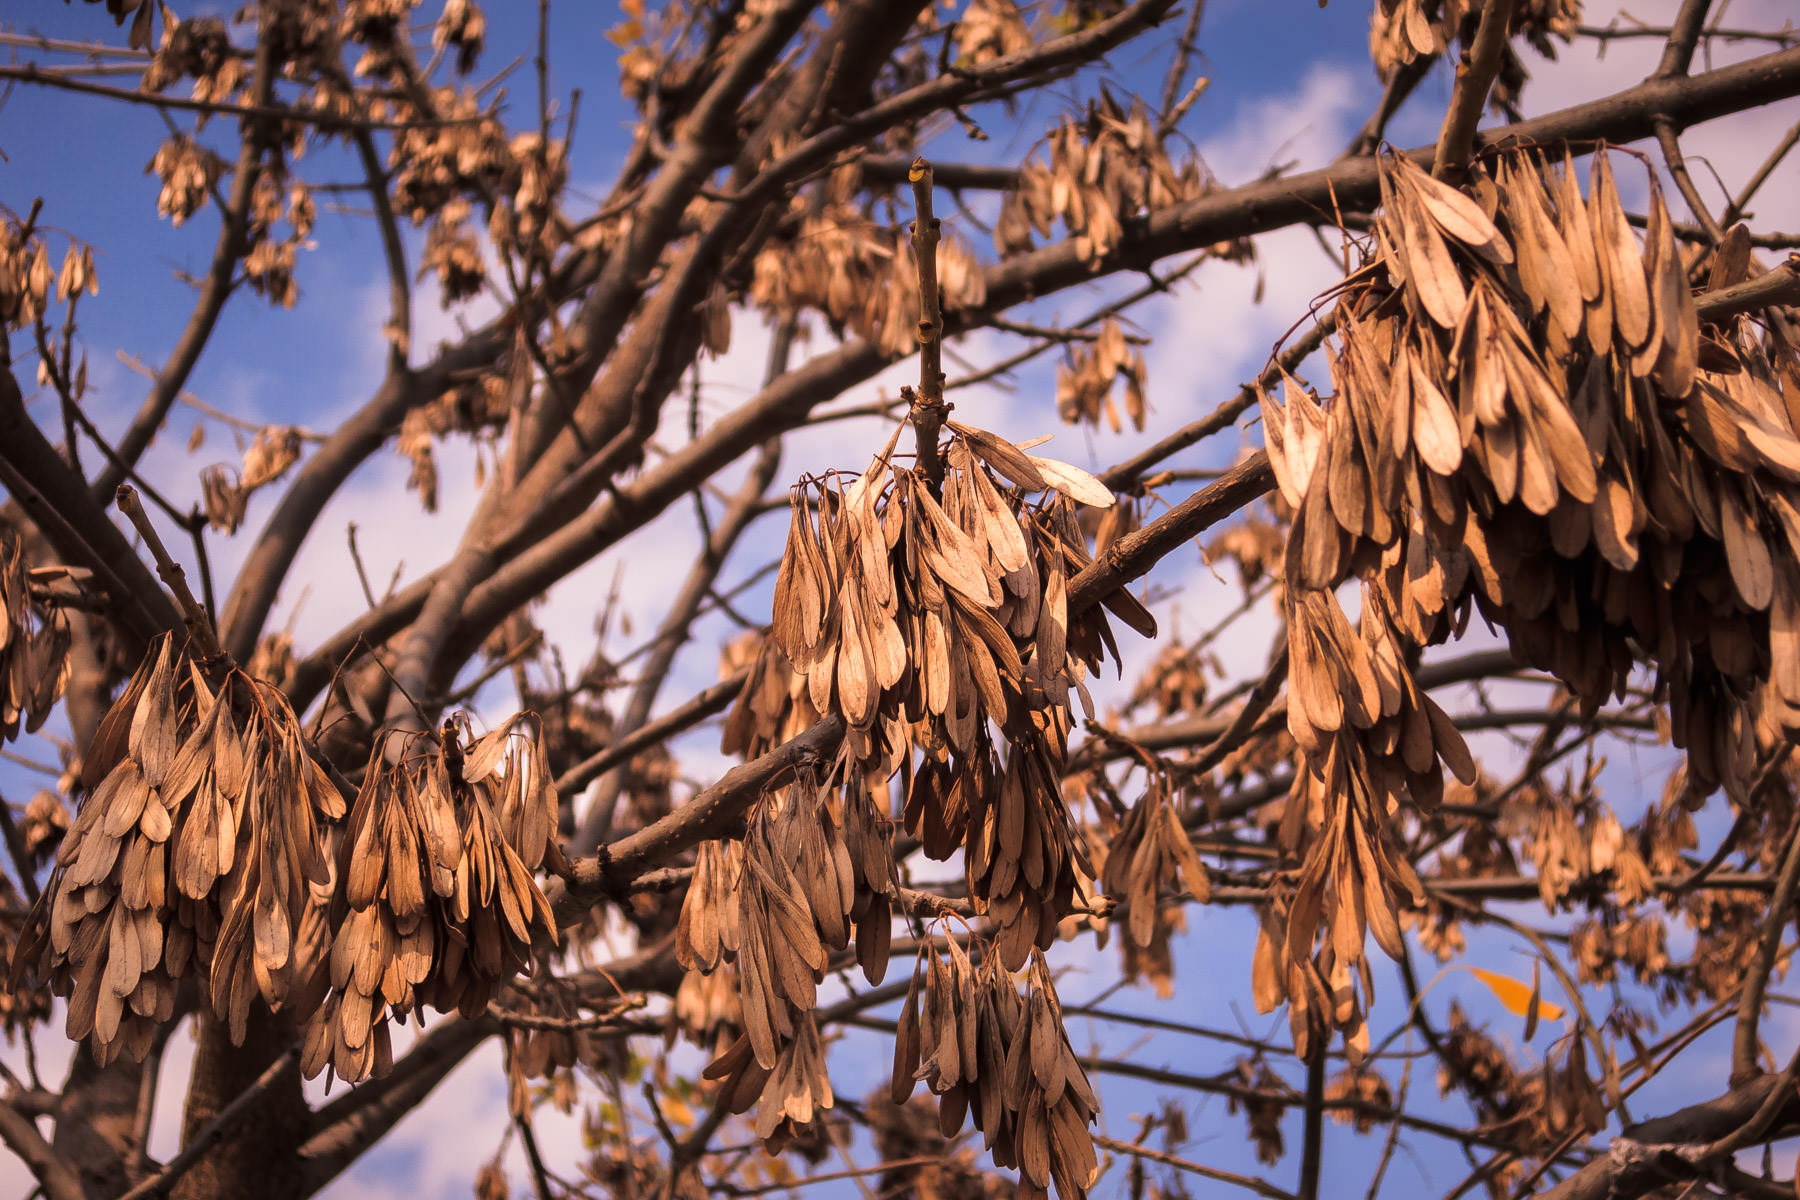 Leaves on this Plano, Texas tree droop as they get close to falling to the ground.